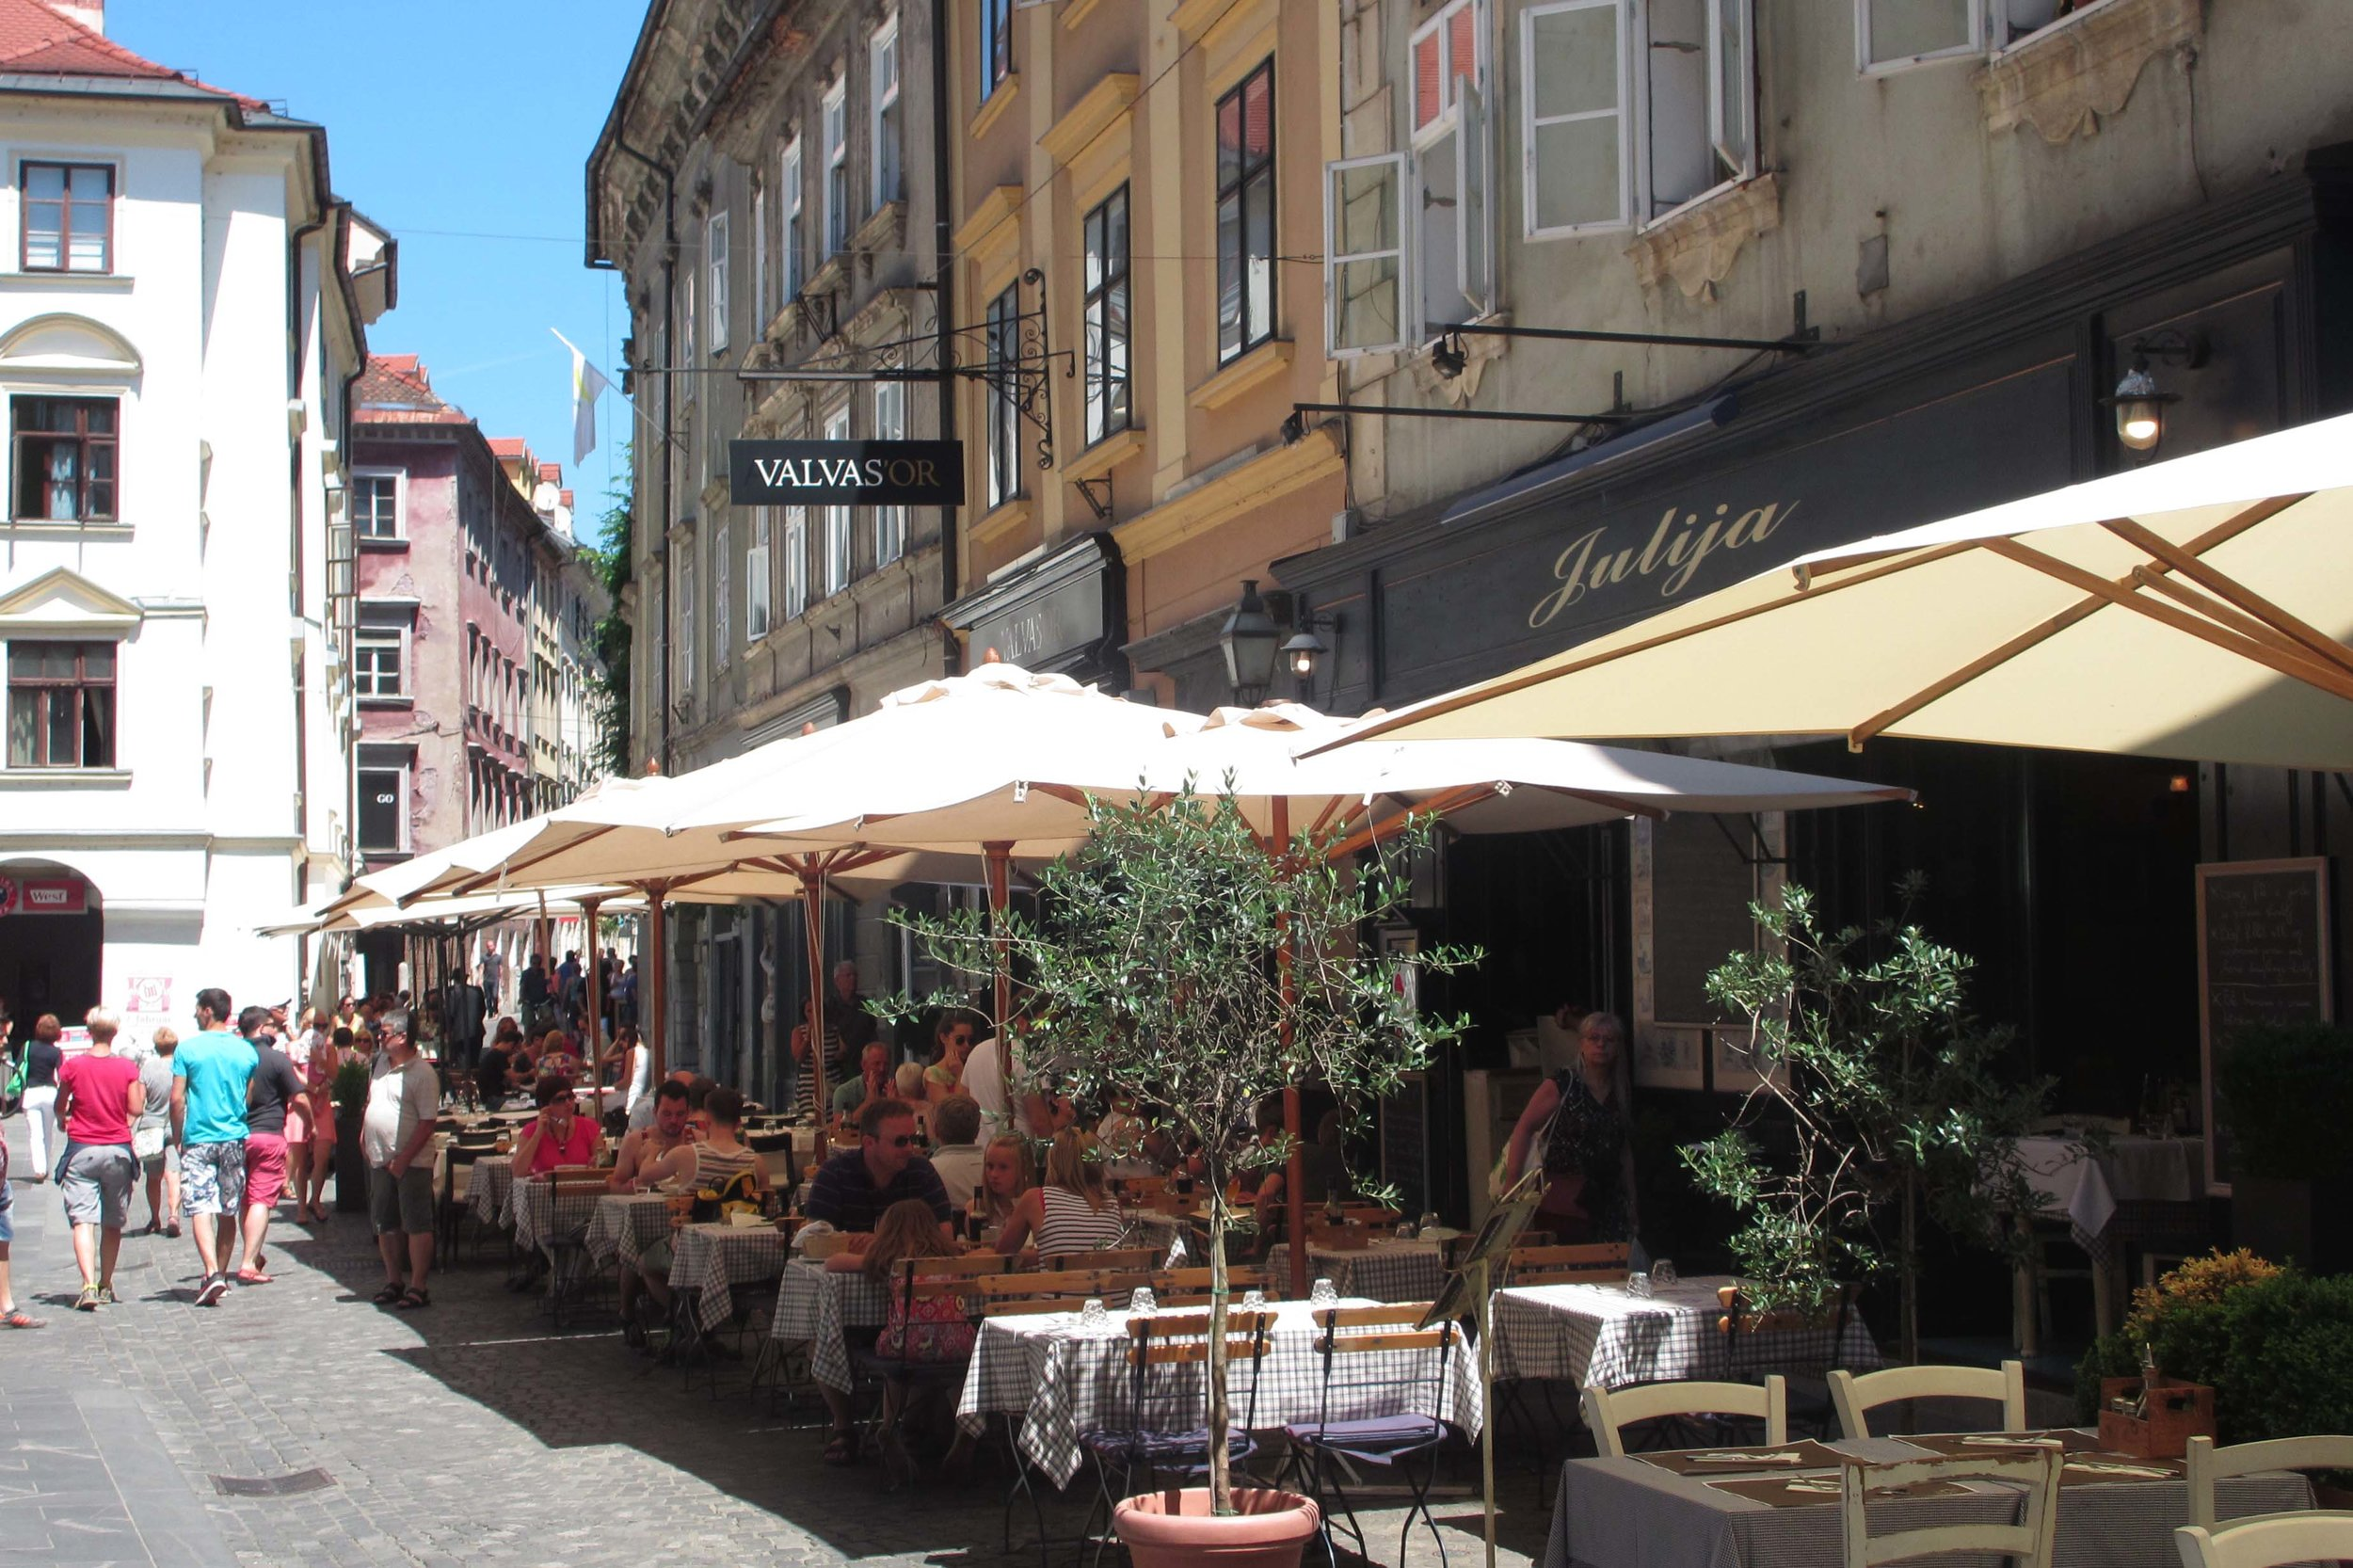 It's lovely to wander Ljubljana's pedestrian-friendly streets without having to look out for traffic © Sarah Reid